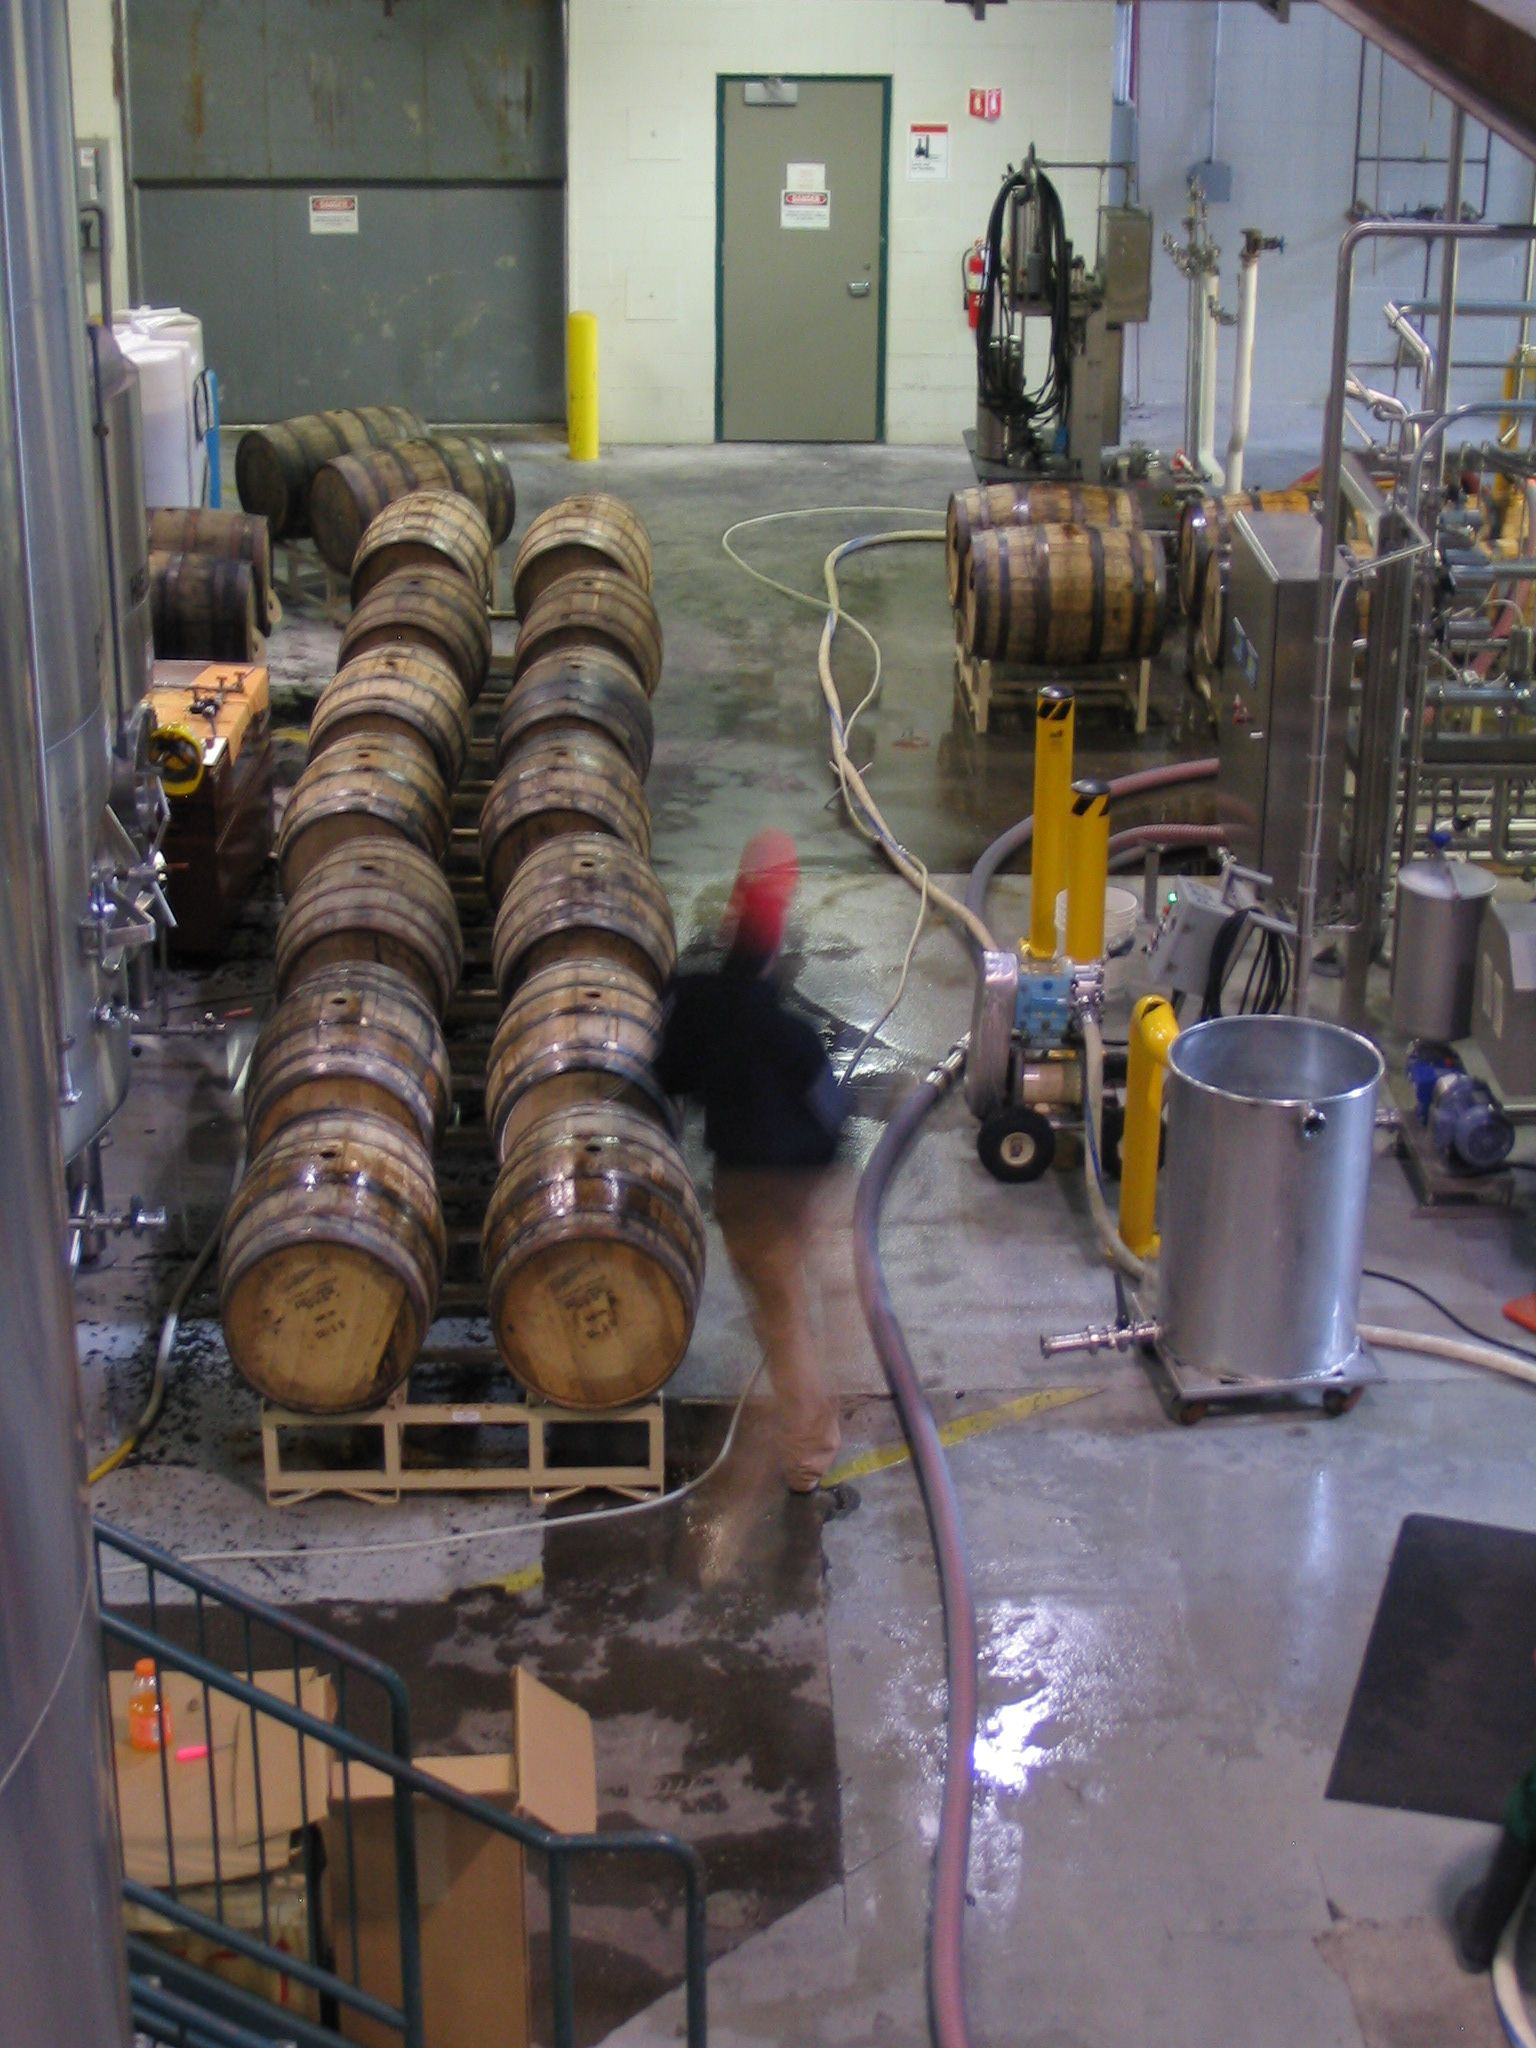 Deschutes' cellar head extracts Abyss from barrels for our drinking pleasure.